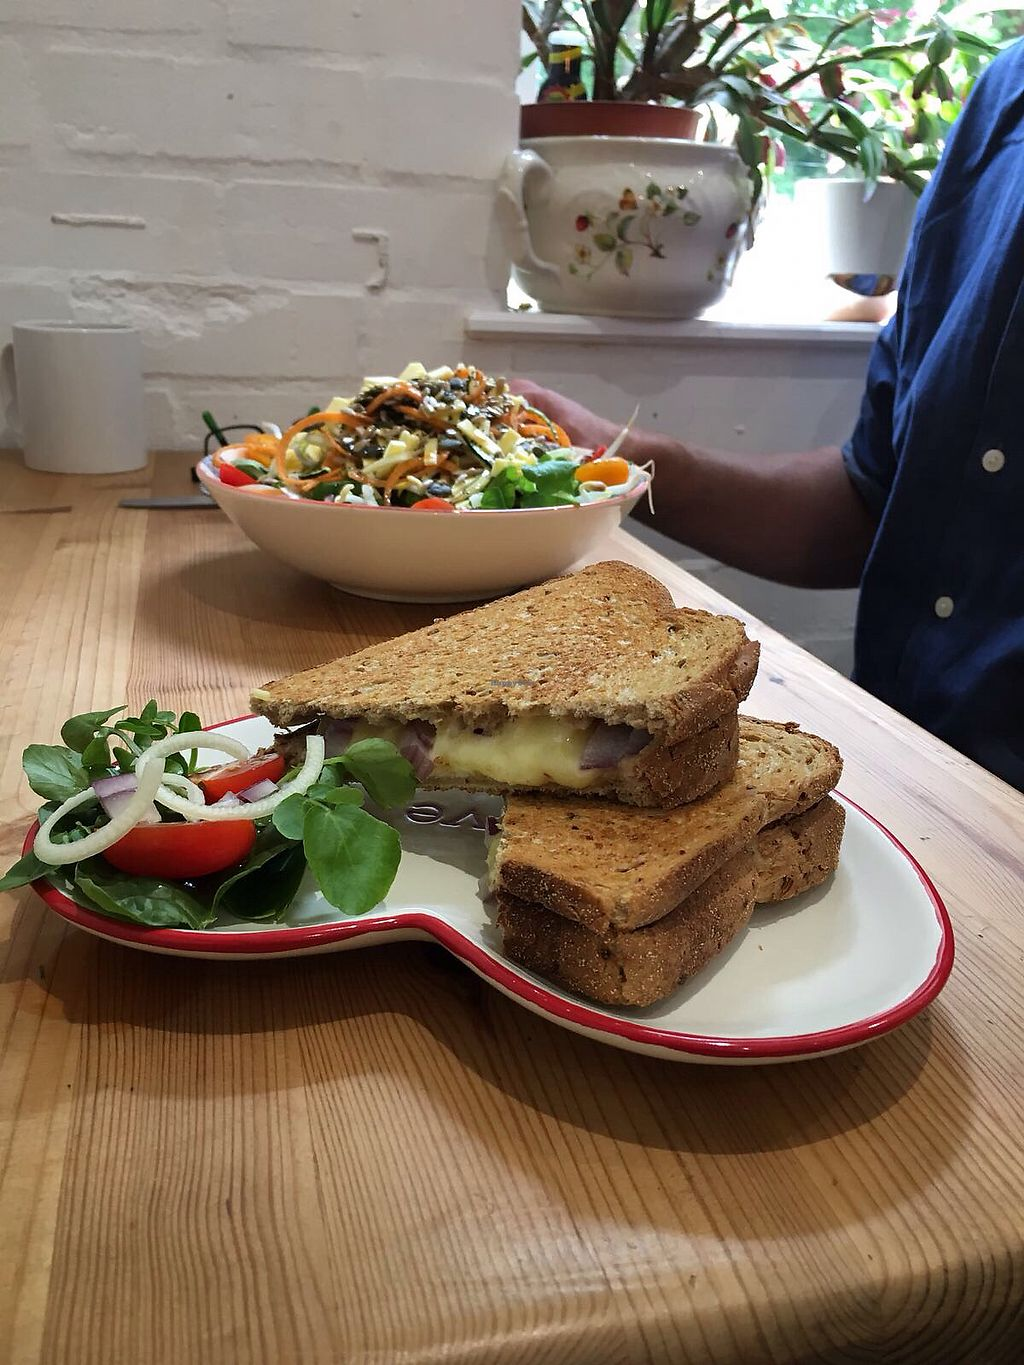 """Photo of The Pineapple Cafe  by <a href=""""/members/profile/Duncan%20Glyde"""">Duncan Glyde</a> <br/>lunch at Pineapple cafe <br/> June 25, 2017  - <a href='/contact/abuse/image/94645/273305'>Report</a>"""